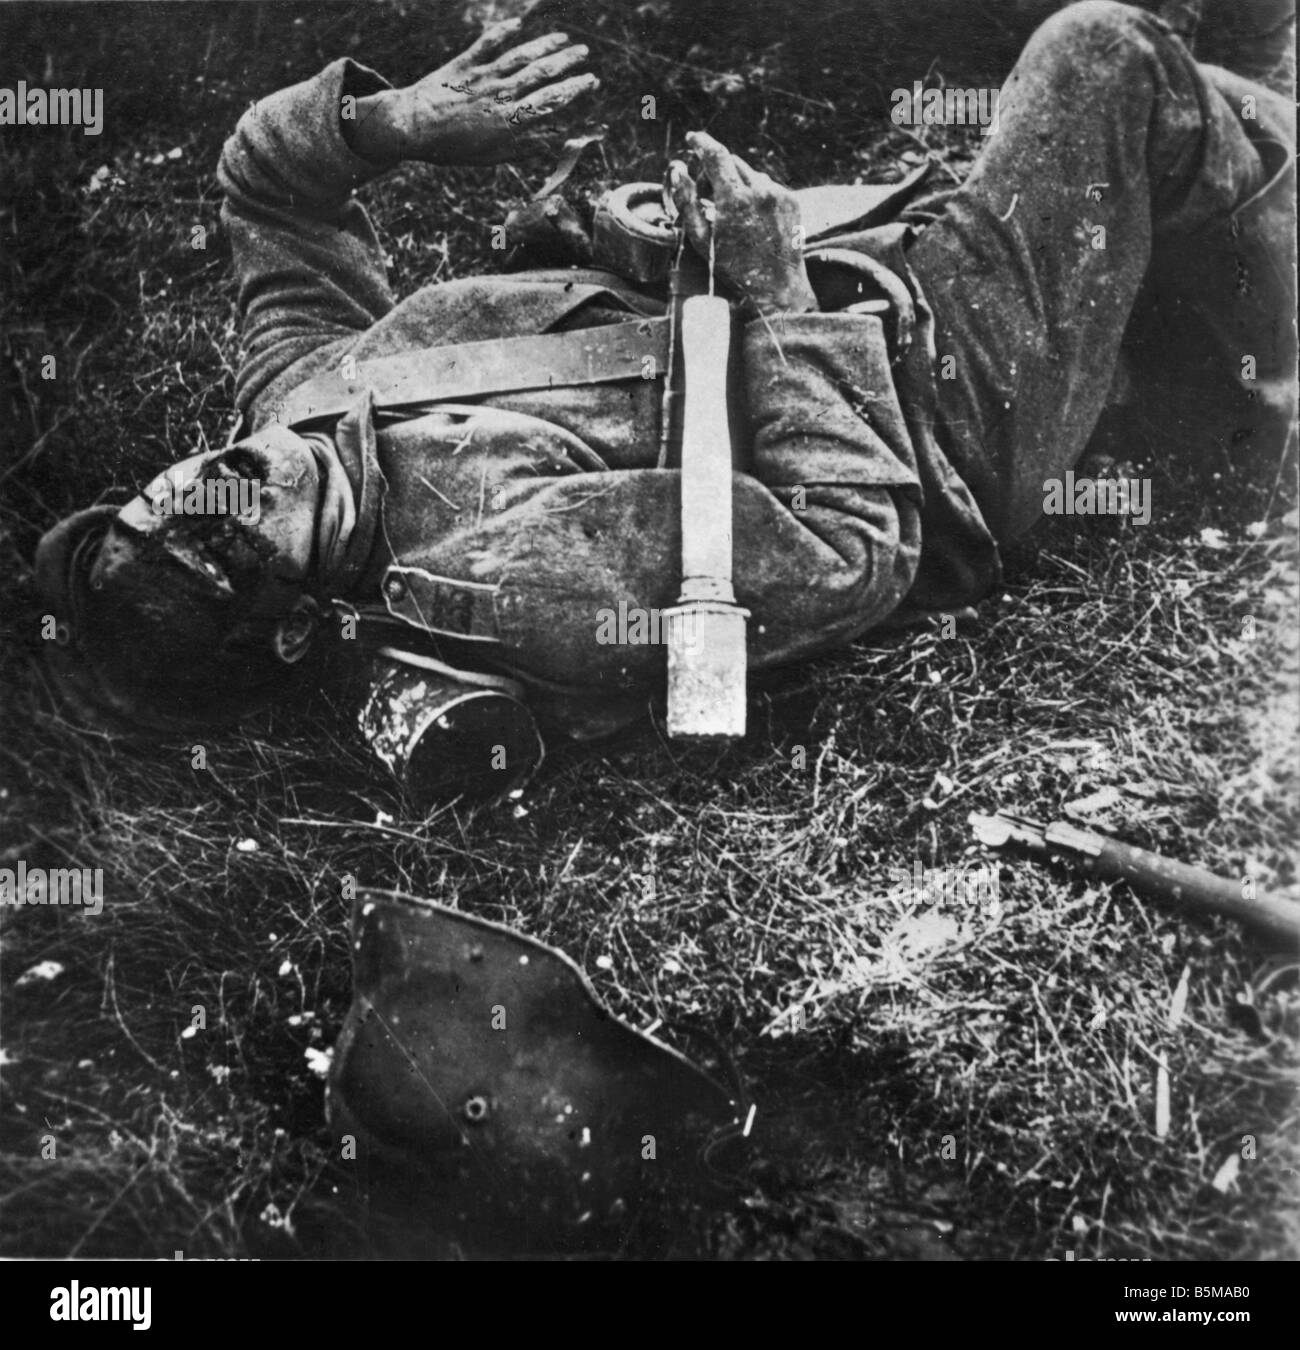 2 G55 W1 1915 7 E German soldier killed in action WWI History WWI Western Front German soldier killed in action - Stock Image